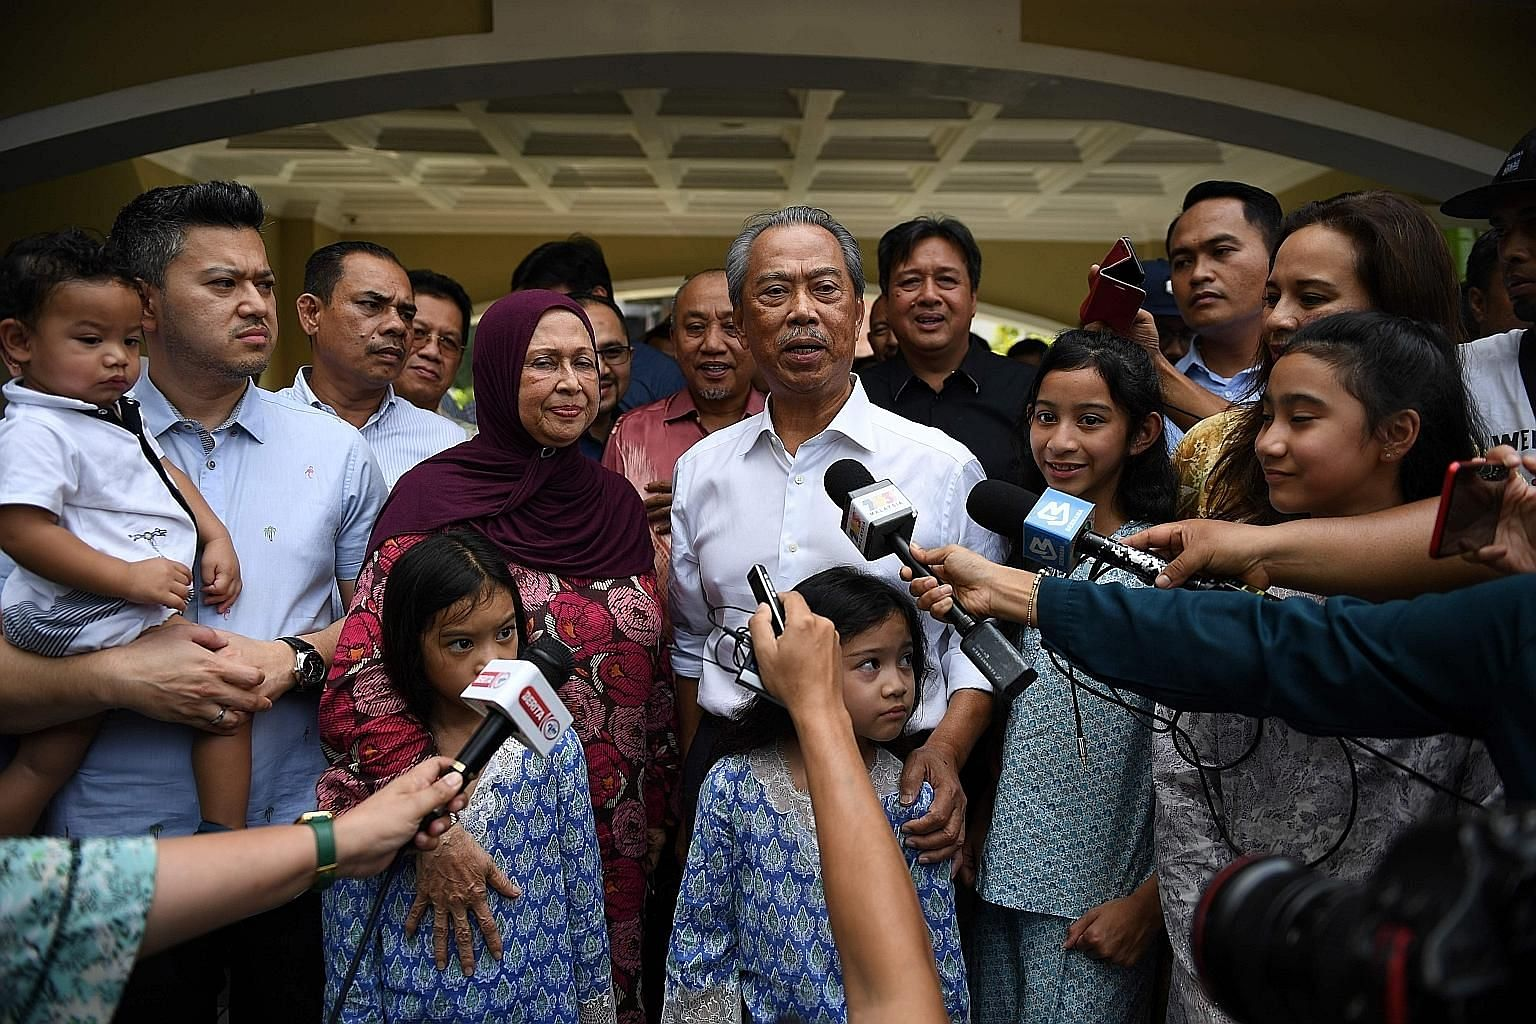 In a news conference last Wednesday, interim Prime Minister Mahathir Mohamad announced his wish to form a non-partisan unity government. PHOTO: REUTERS